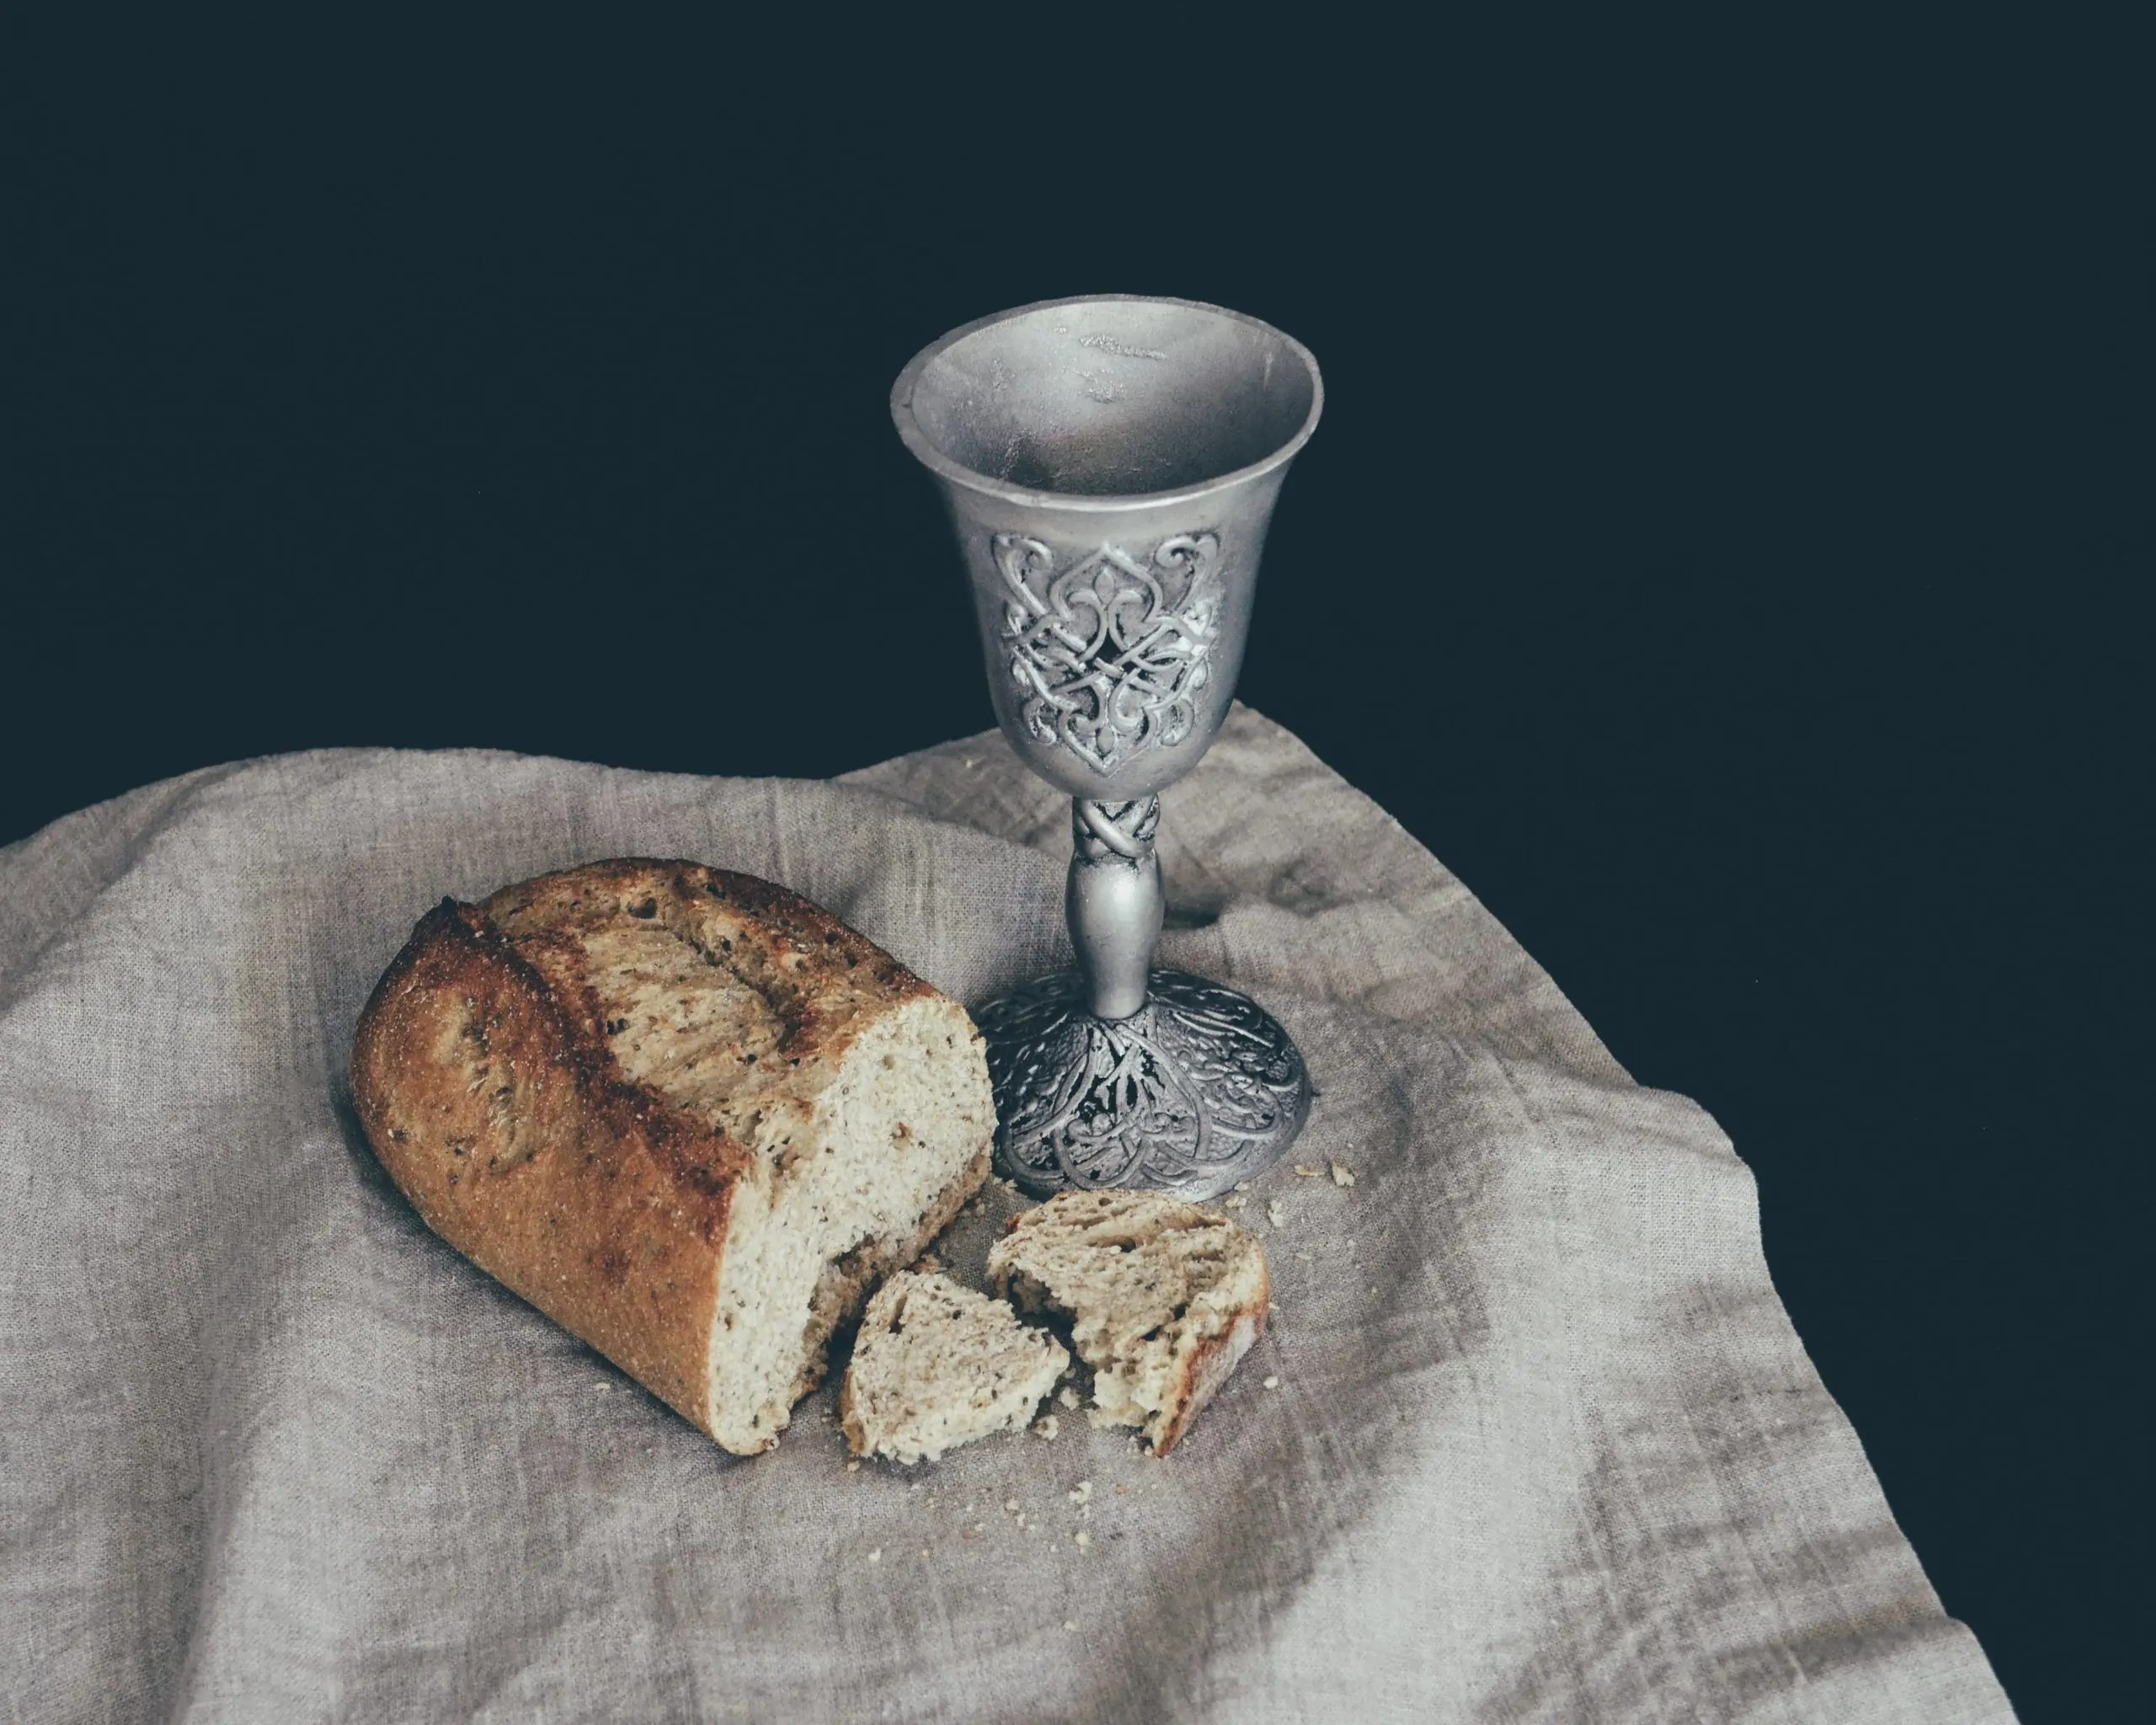 communion, eucharist, passover, easter